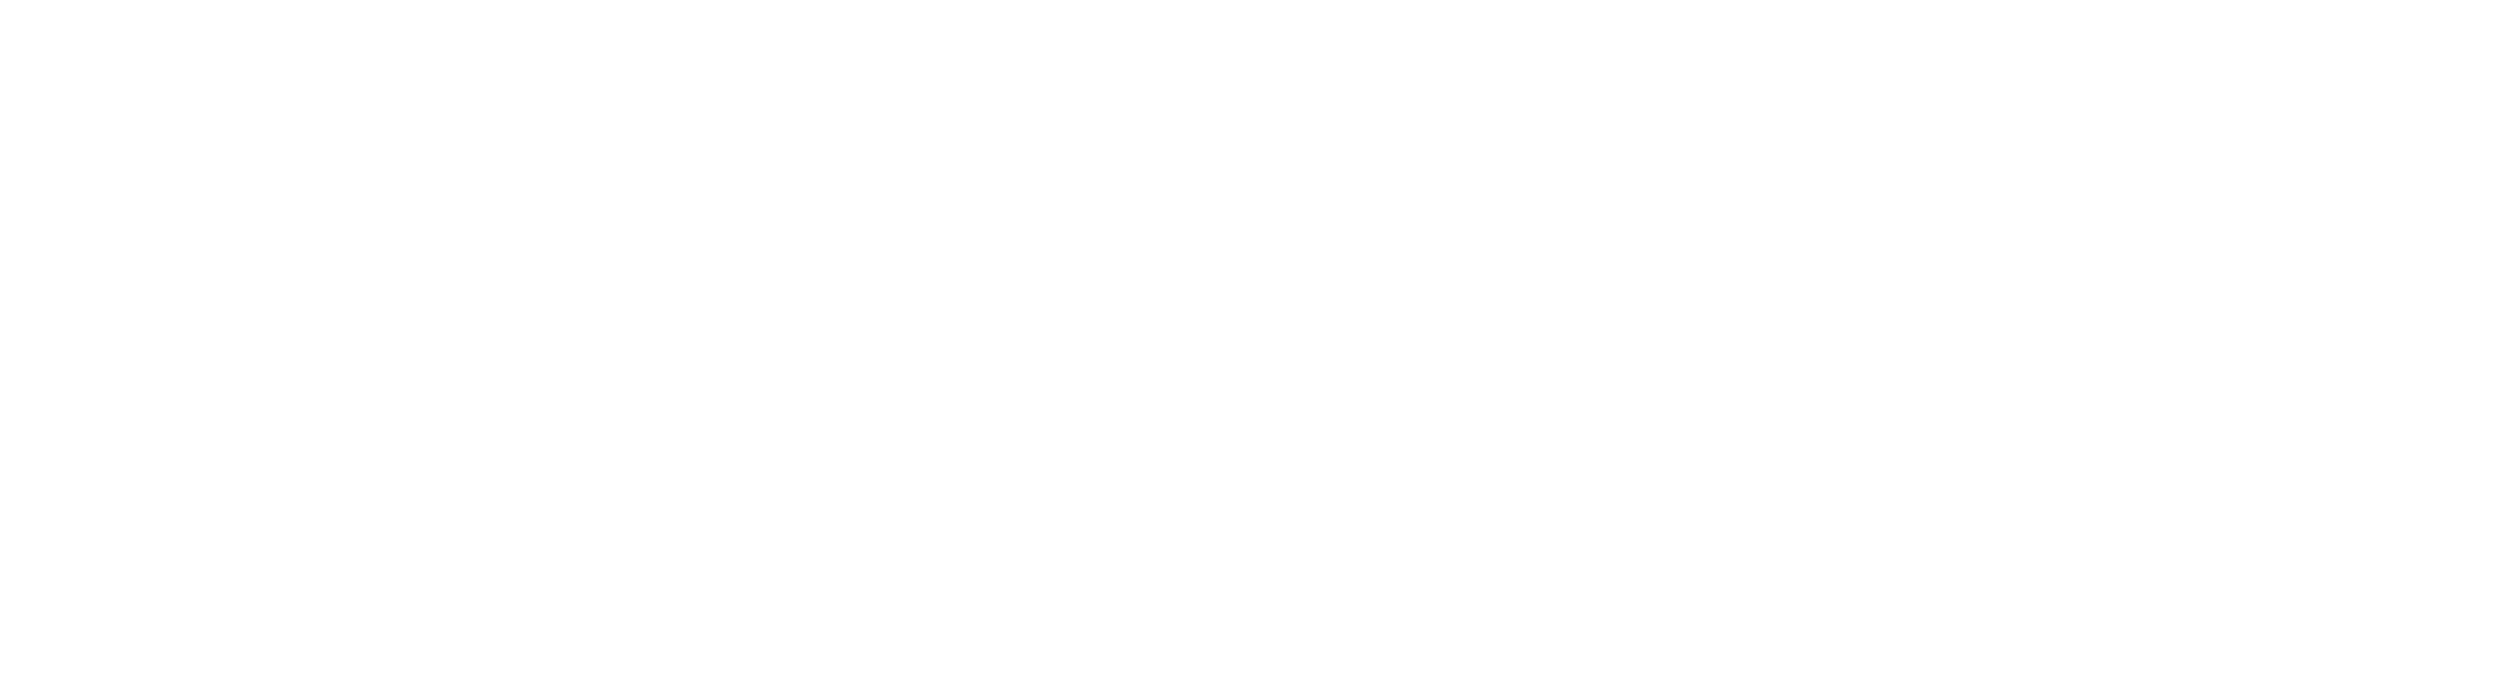 h2_the art of living well featuring cup board pro x williams sonoma.png